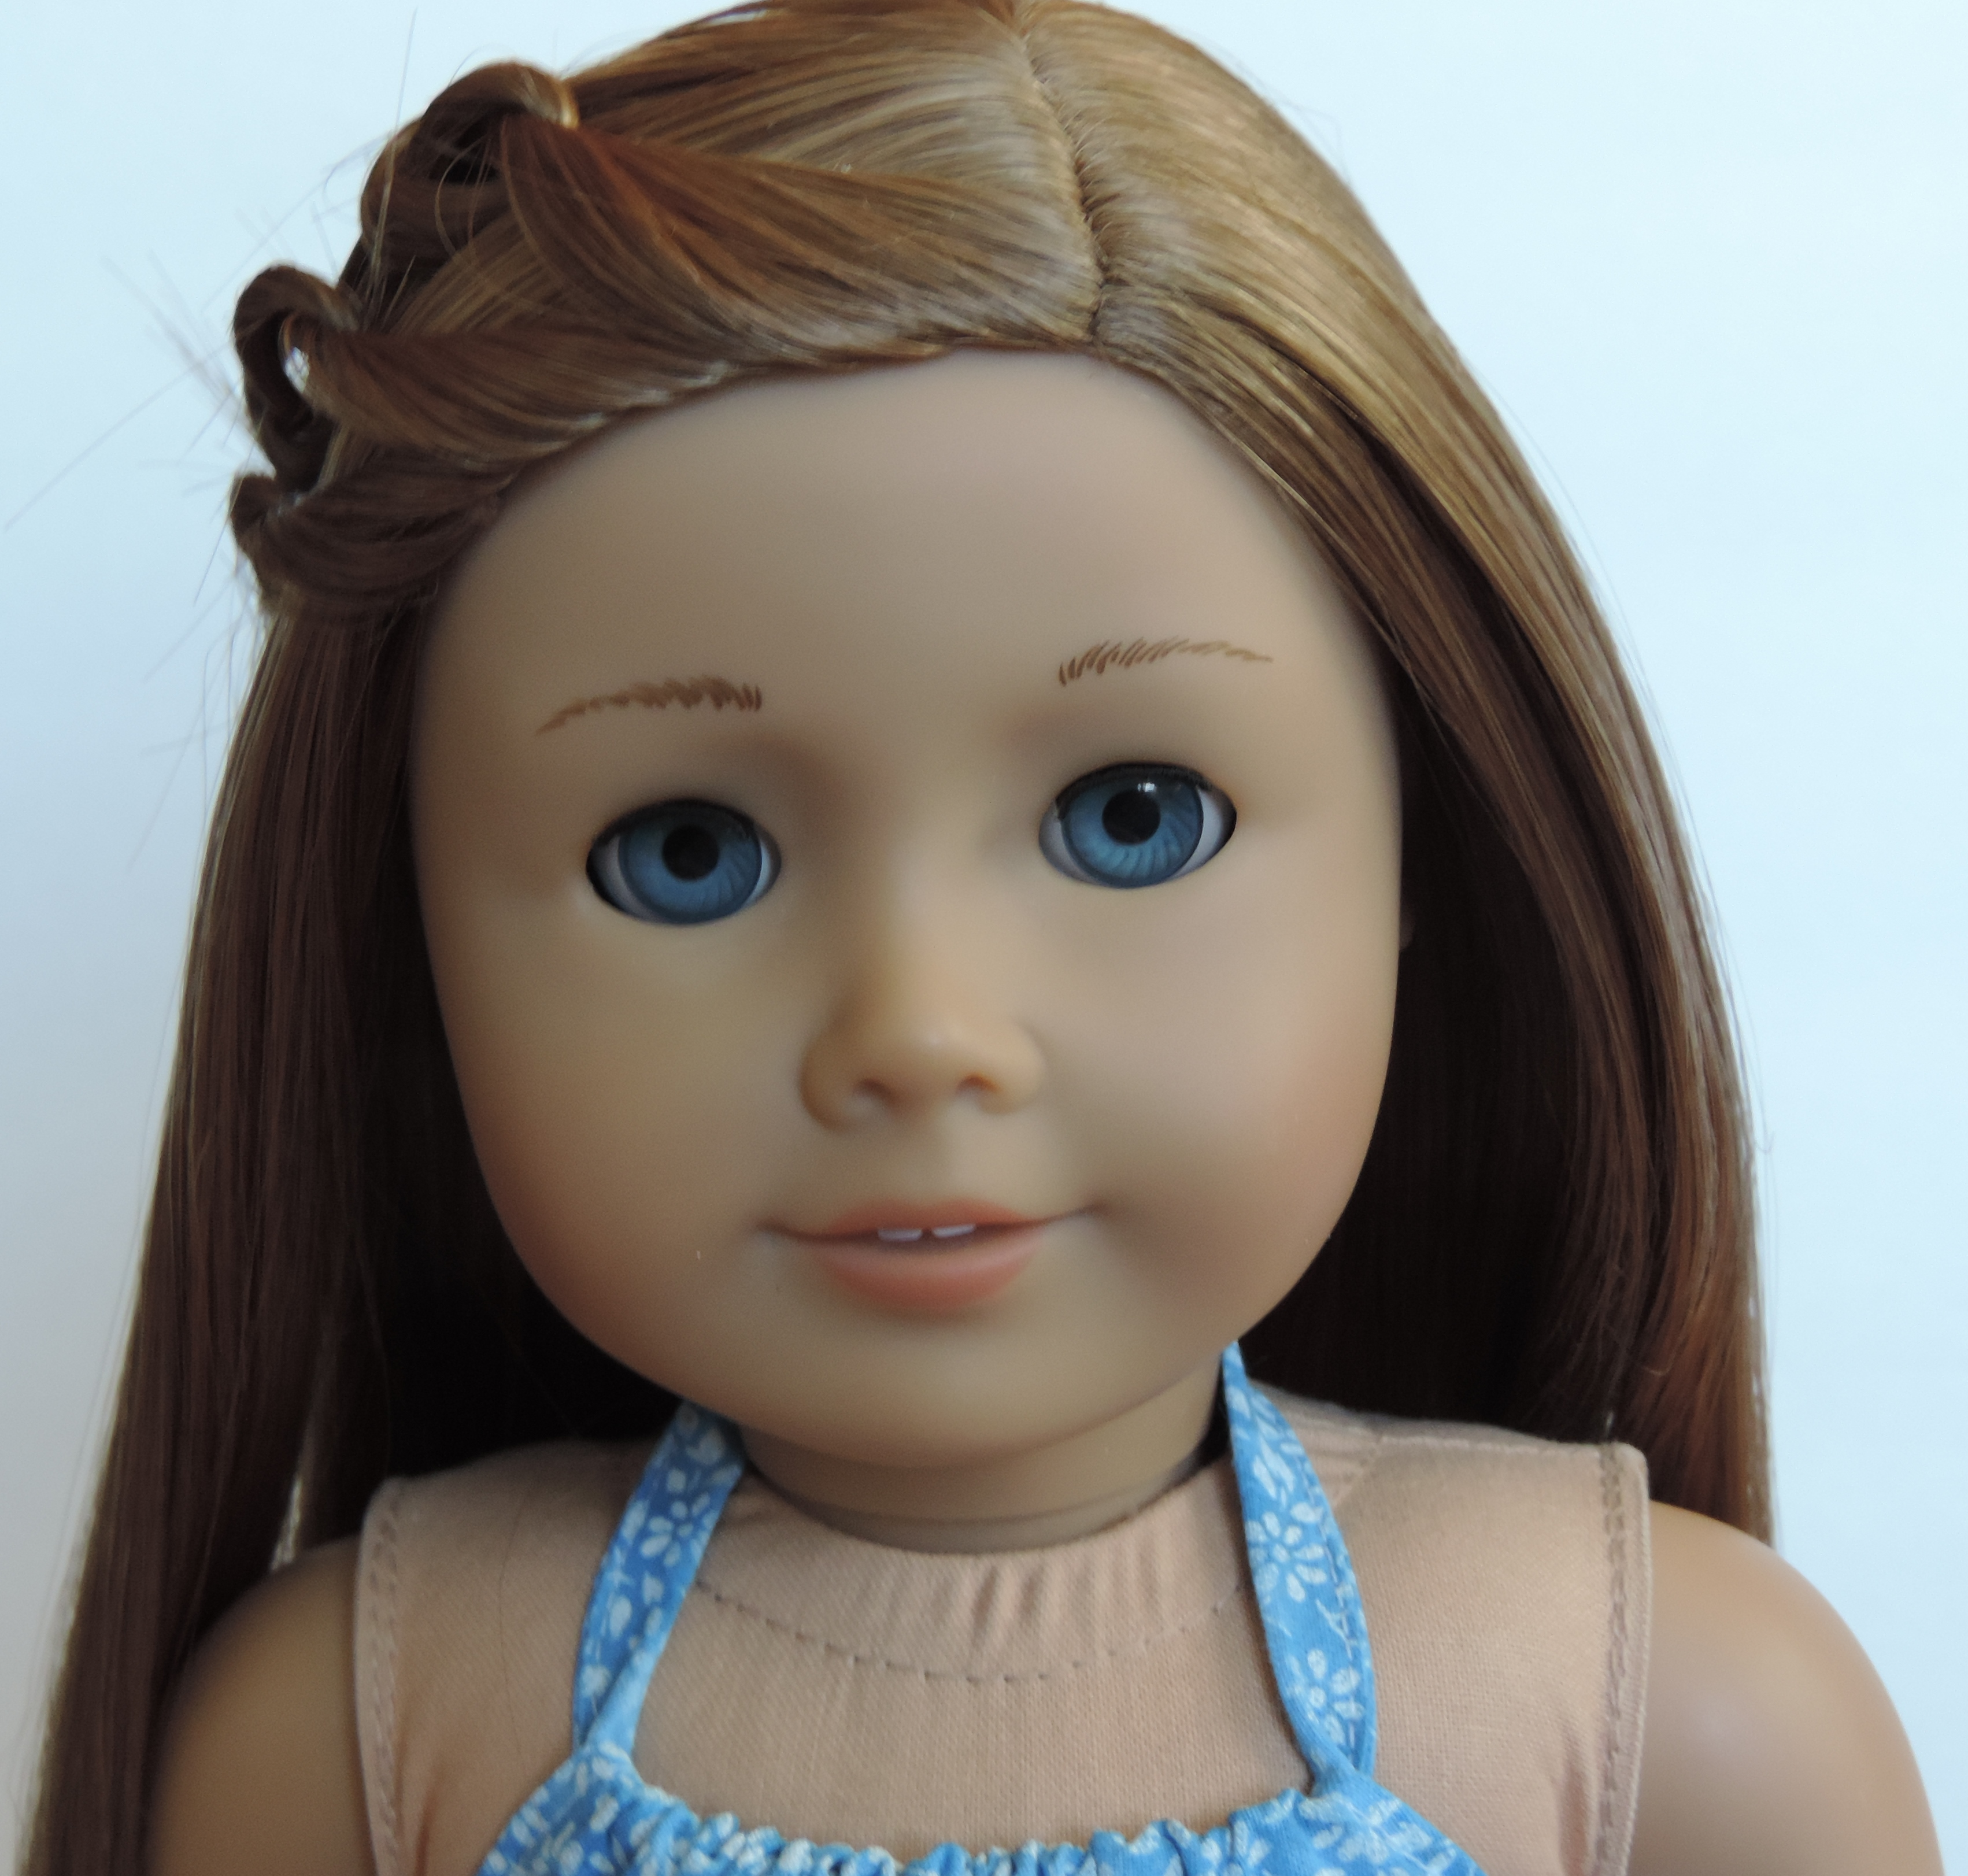 American Girl Doll Disney Hairstyles : Our generation dolls hairstyles newhairstylesformen